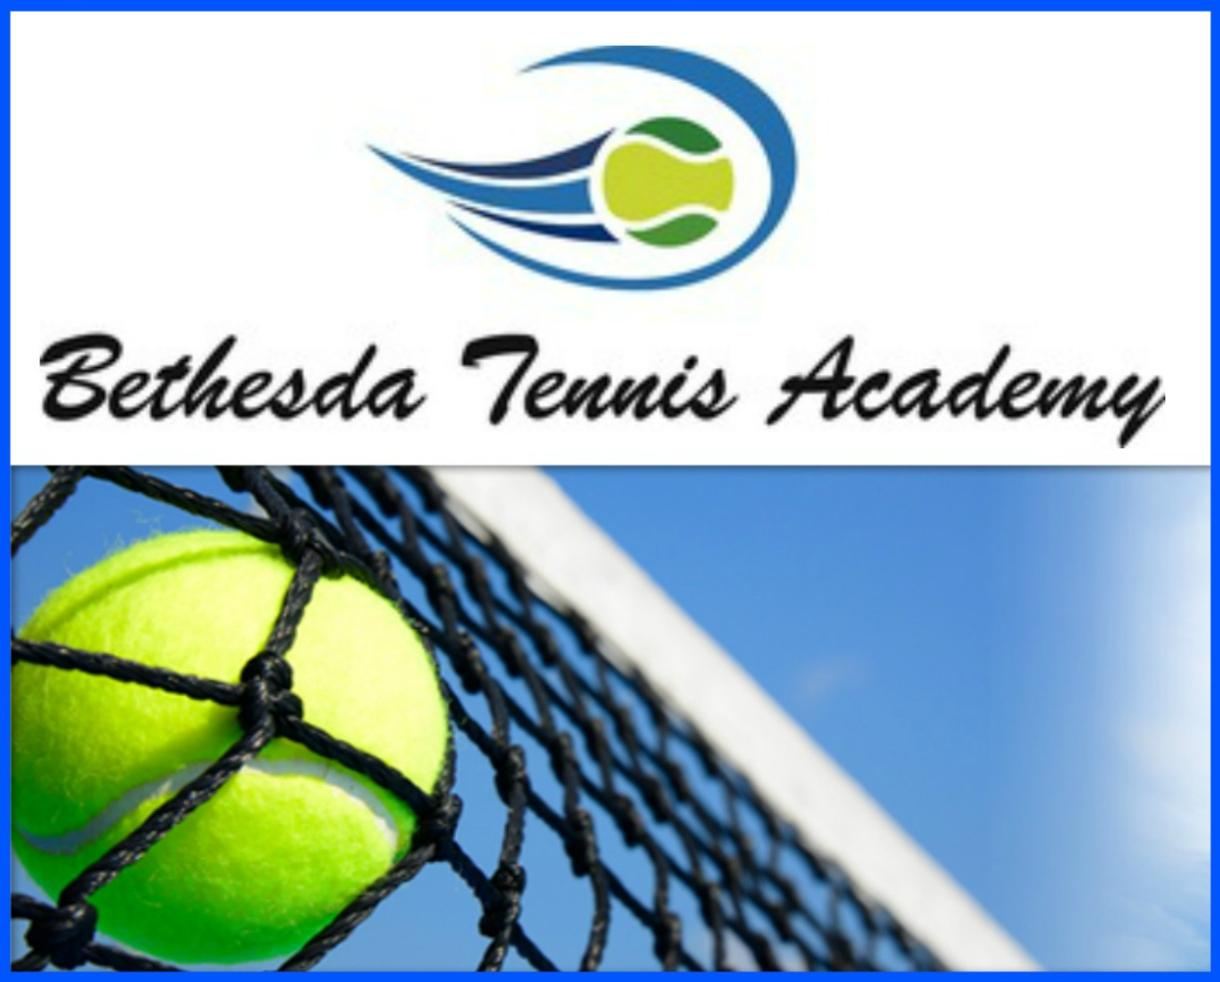 Half Day Clinic at Bethesda Tennis Academy